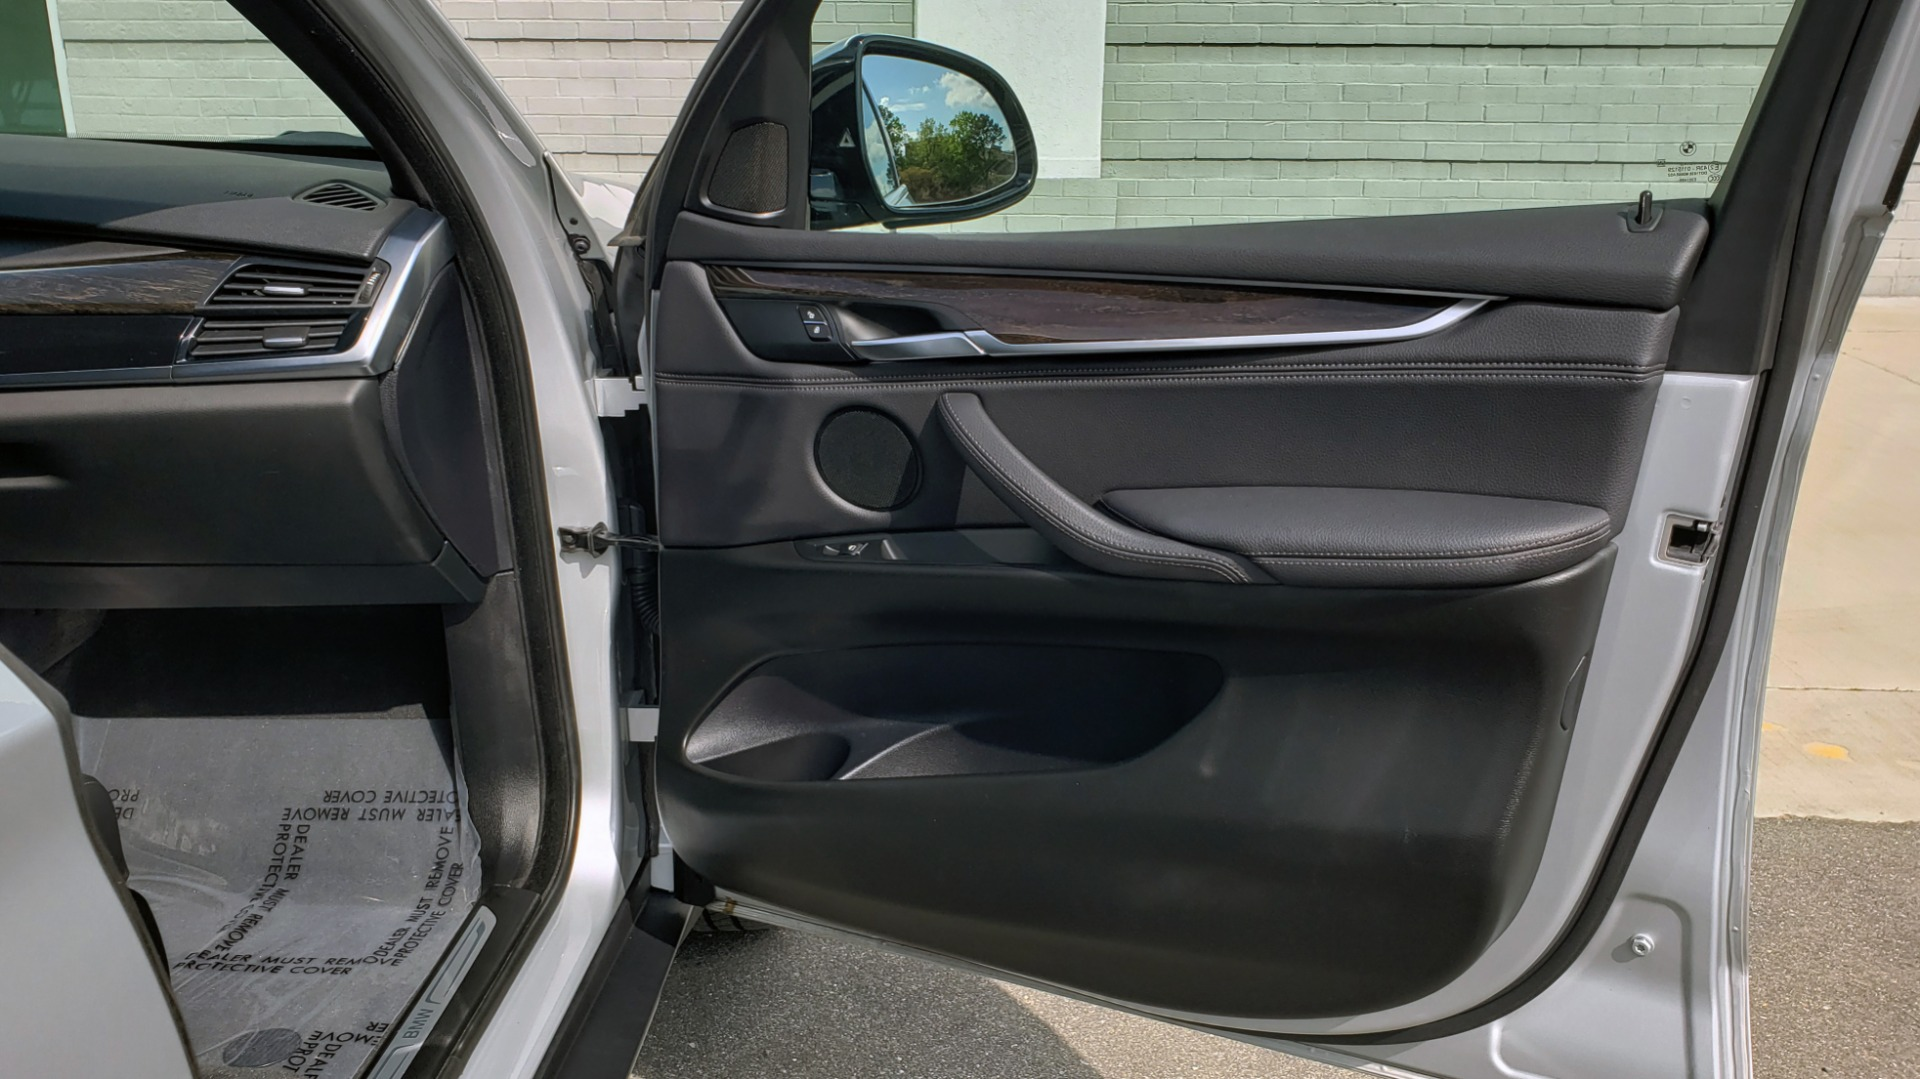 Used 2018 BMW X5 XDRIVE35I PREMIUM / NAV / PANO-ROOF / DRIVER ASST / REARVIEW for sale Sold at Formula Imports in Charlotte NC 28227 70